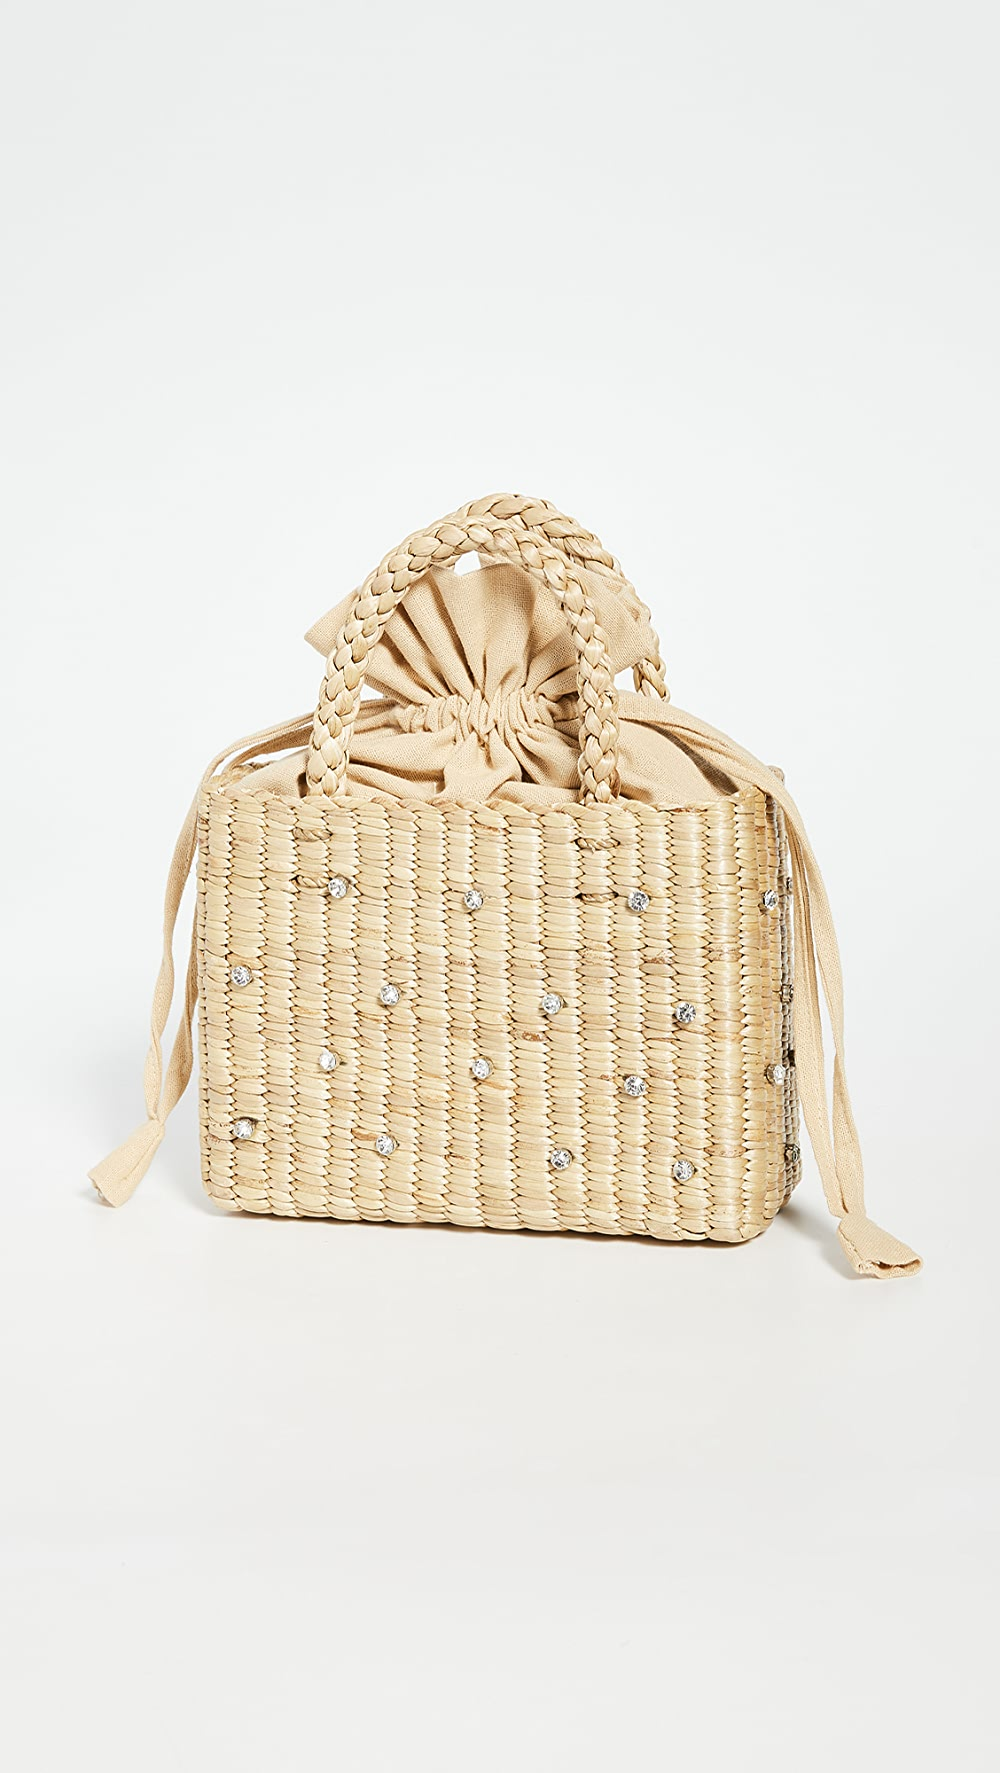 Able Hat Attack - Gemma Tote Aromatic Character And Agreeable Taste